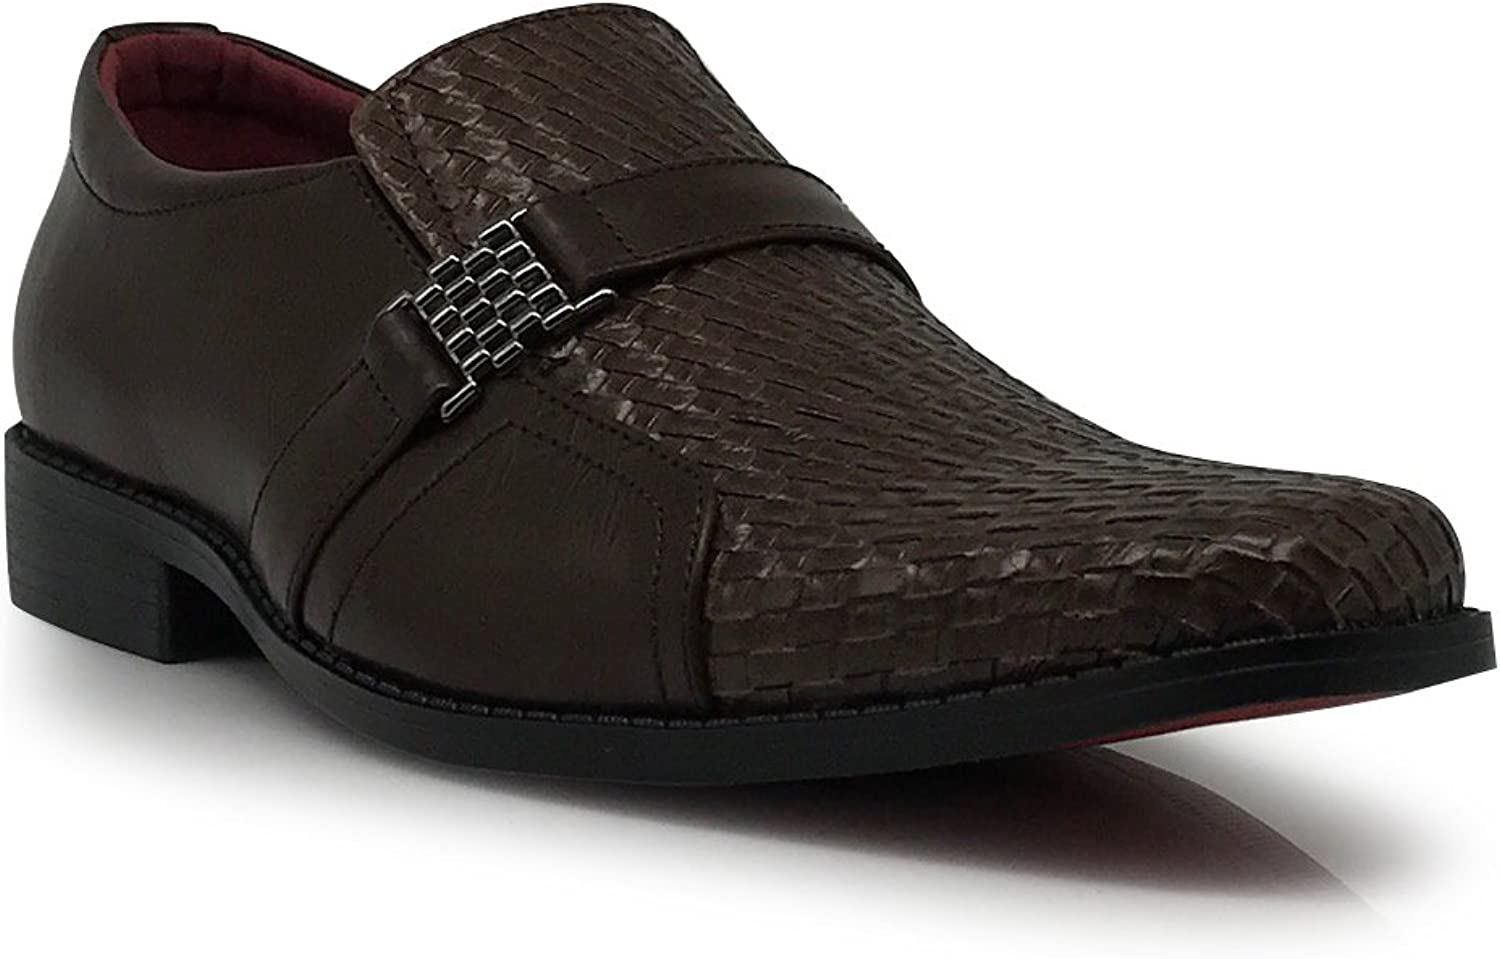 Enzo Romeo Gator05 Men's  Business Woven Weaved Leather Loafers with Buckle Slip On Style shoes